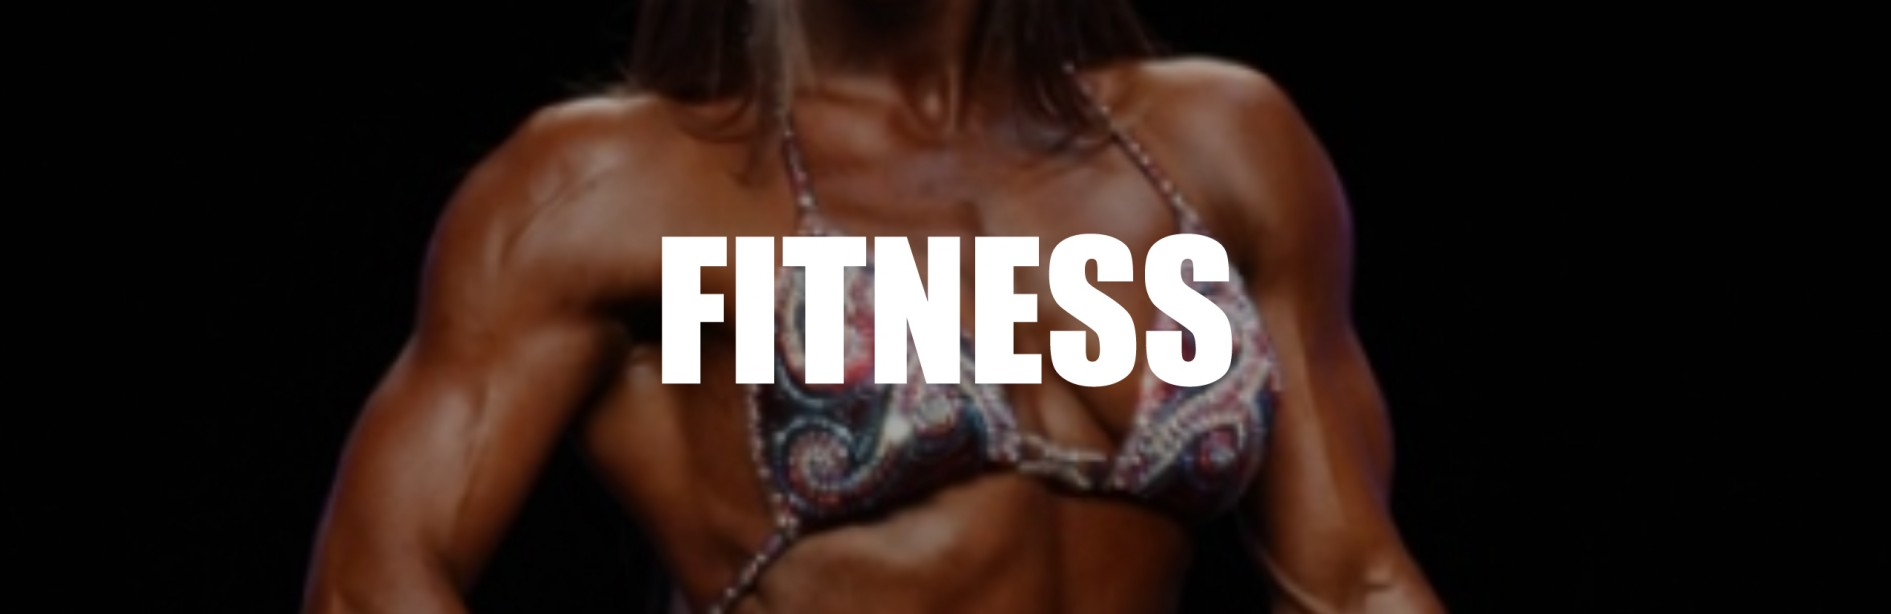 2015 Arnold Classic Fitness Call Out Report